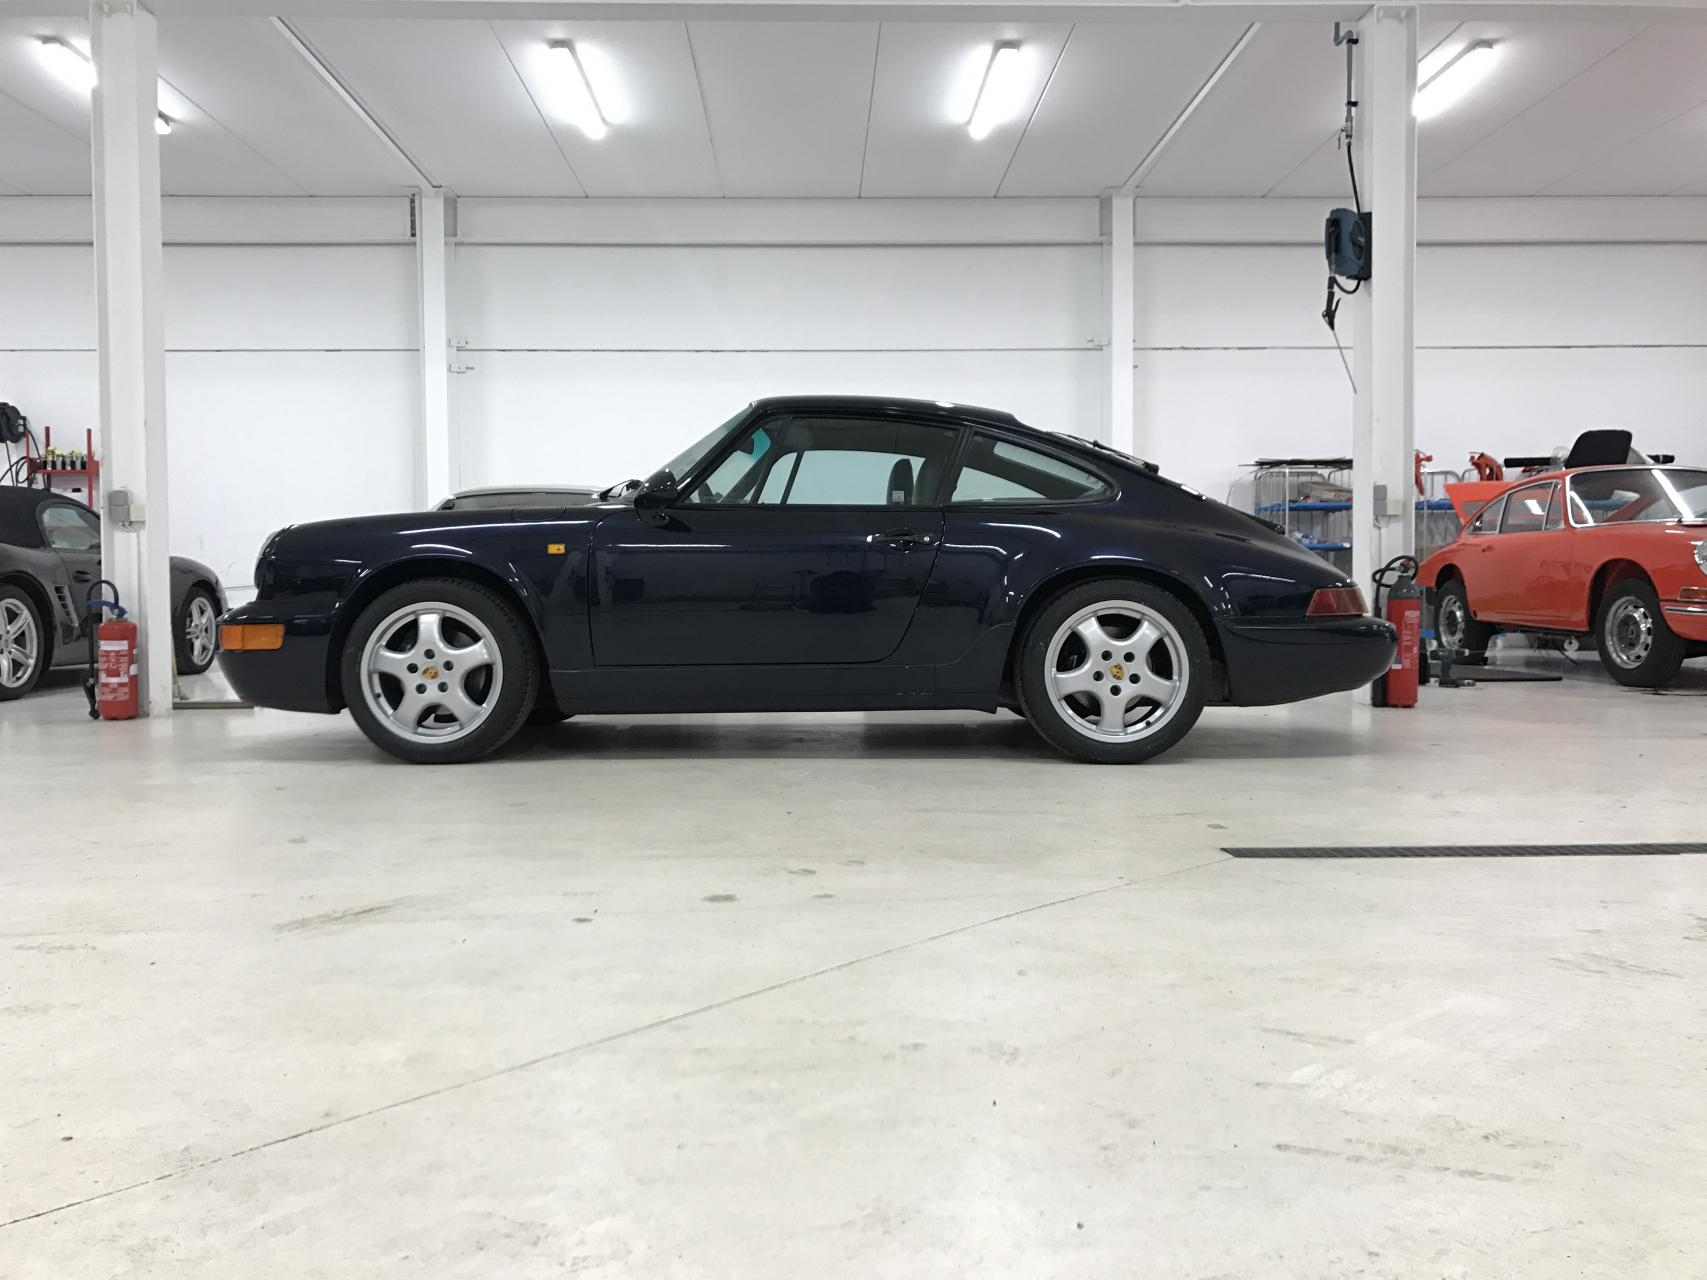 Porsche 964 Carrera 2 - Midnight Blue - 1991 - 1 of 1